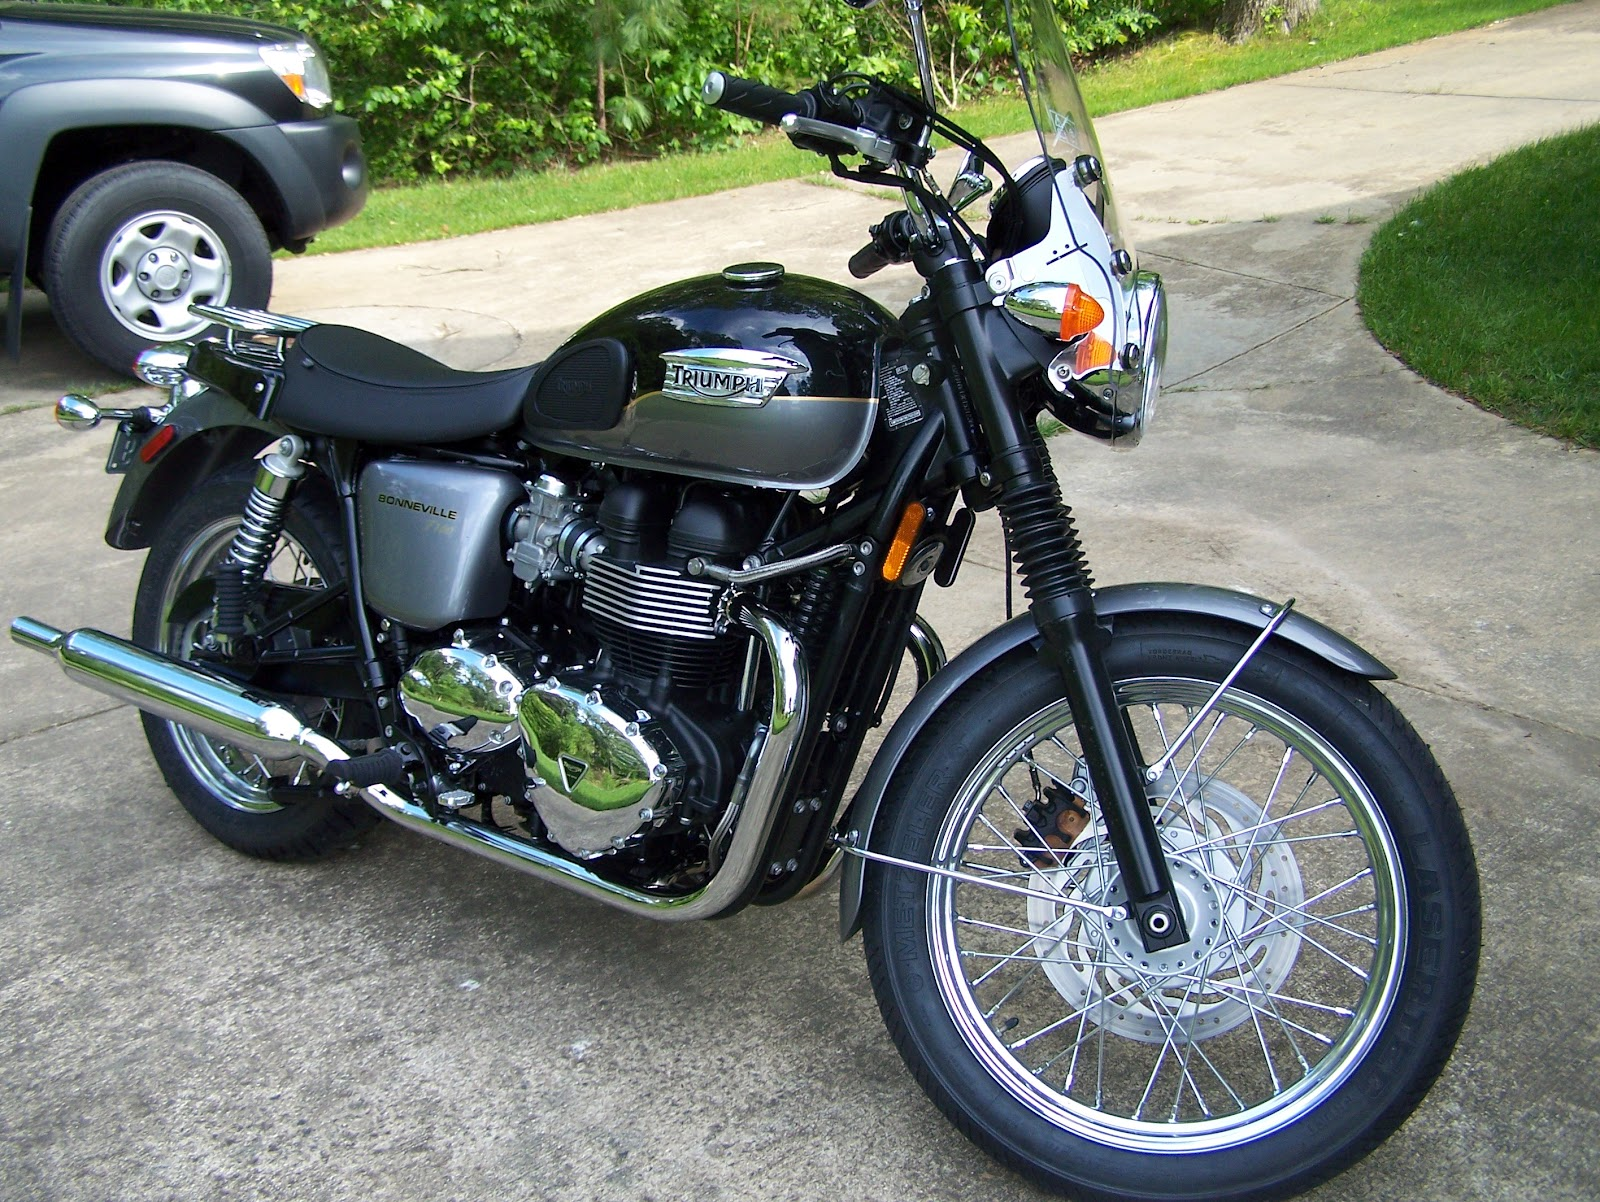 Jim's Motorcycling Adventures: My 2012 Triumph Bonneville T100